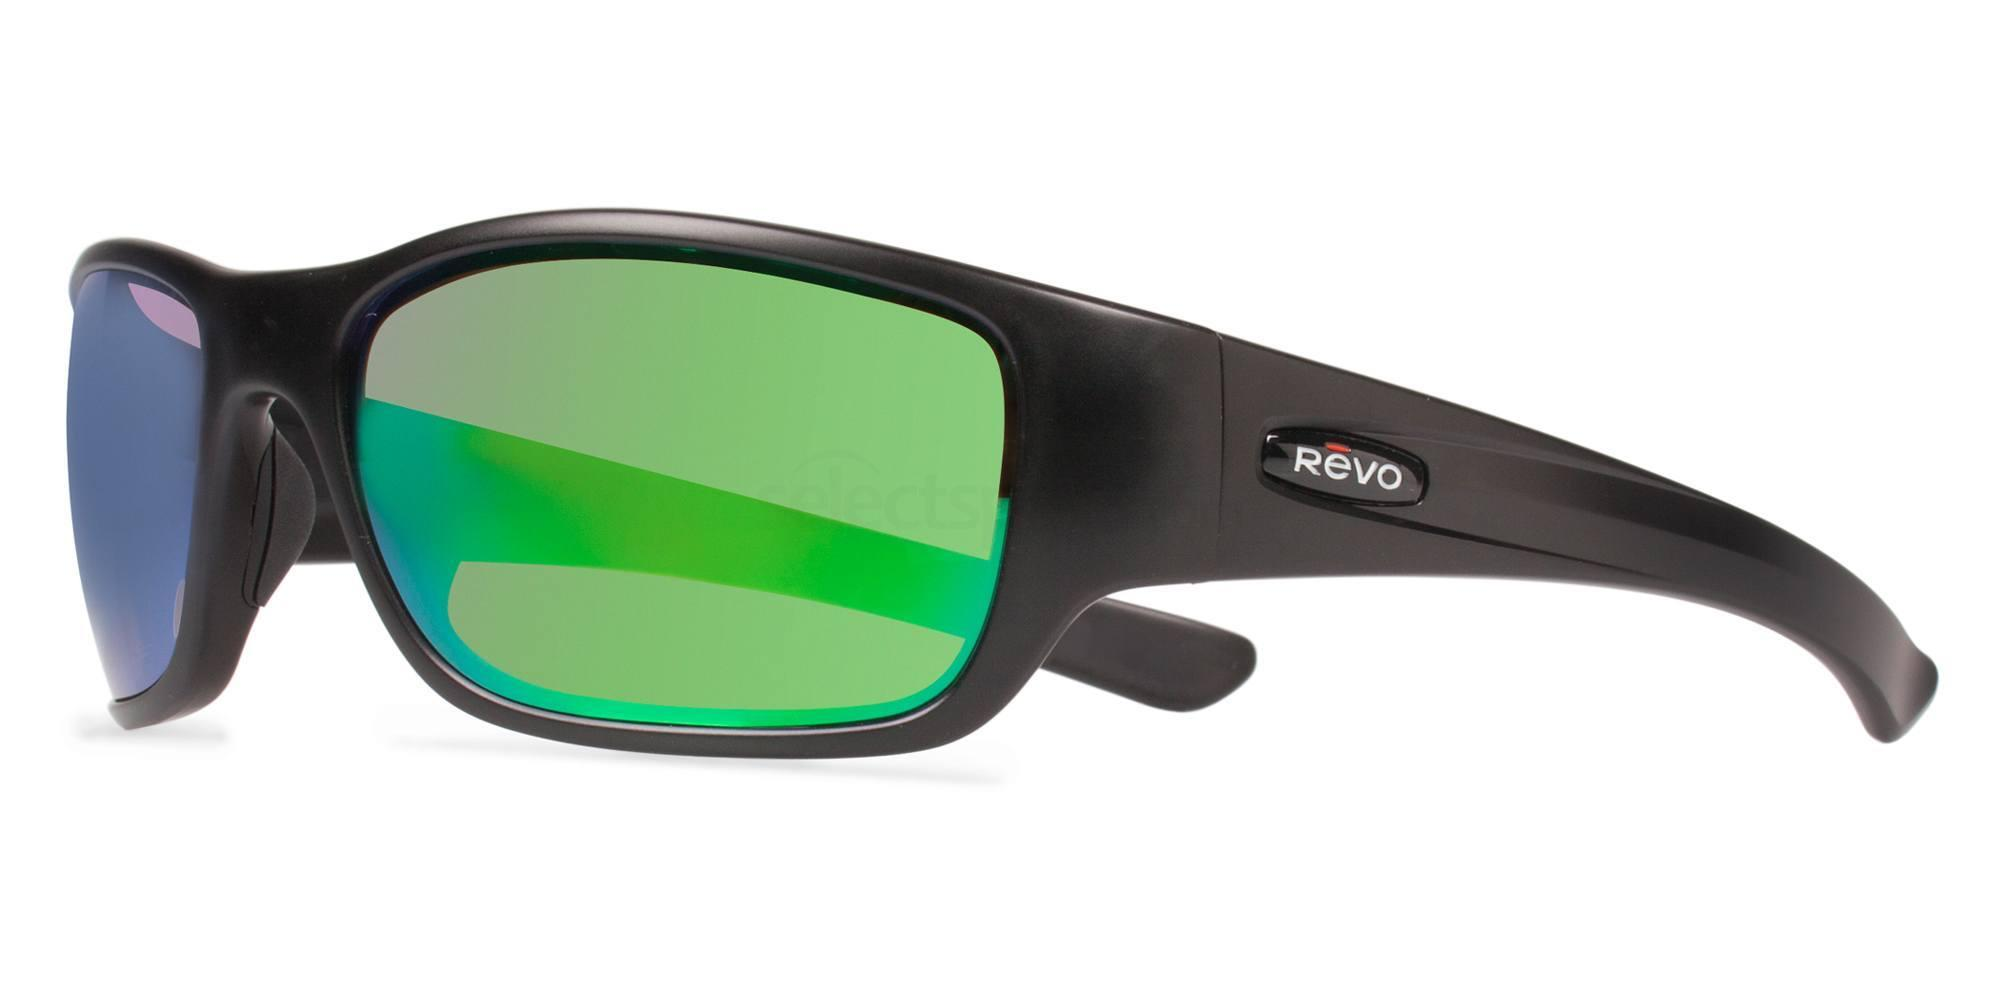 01GN Heading - 354058 Sunglasses, Revo